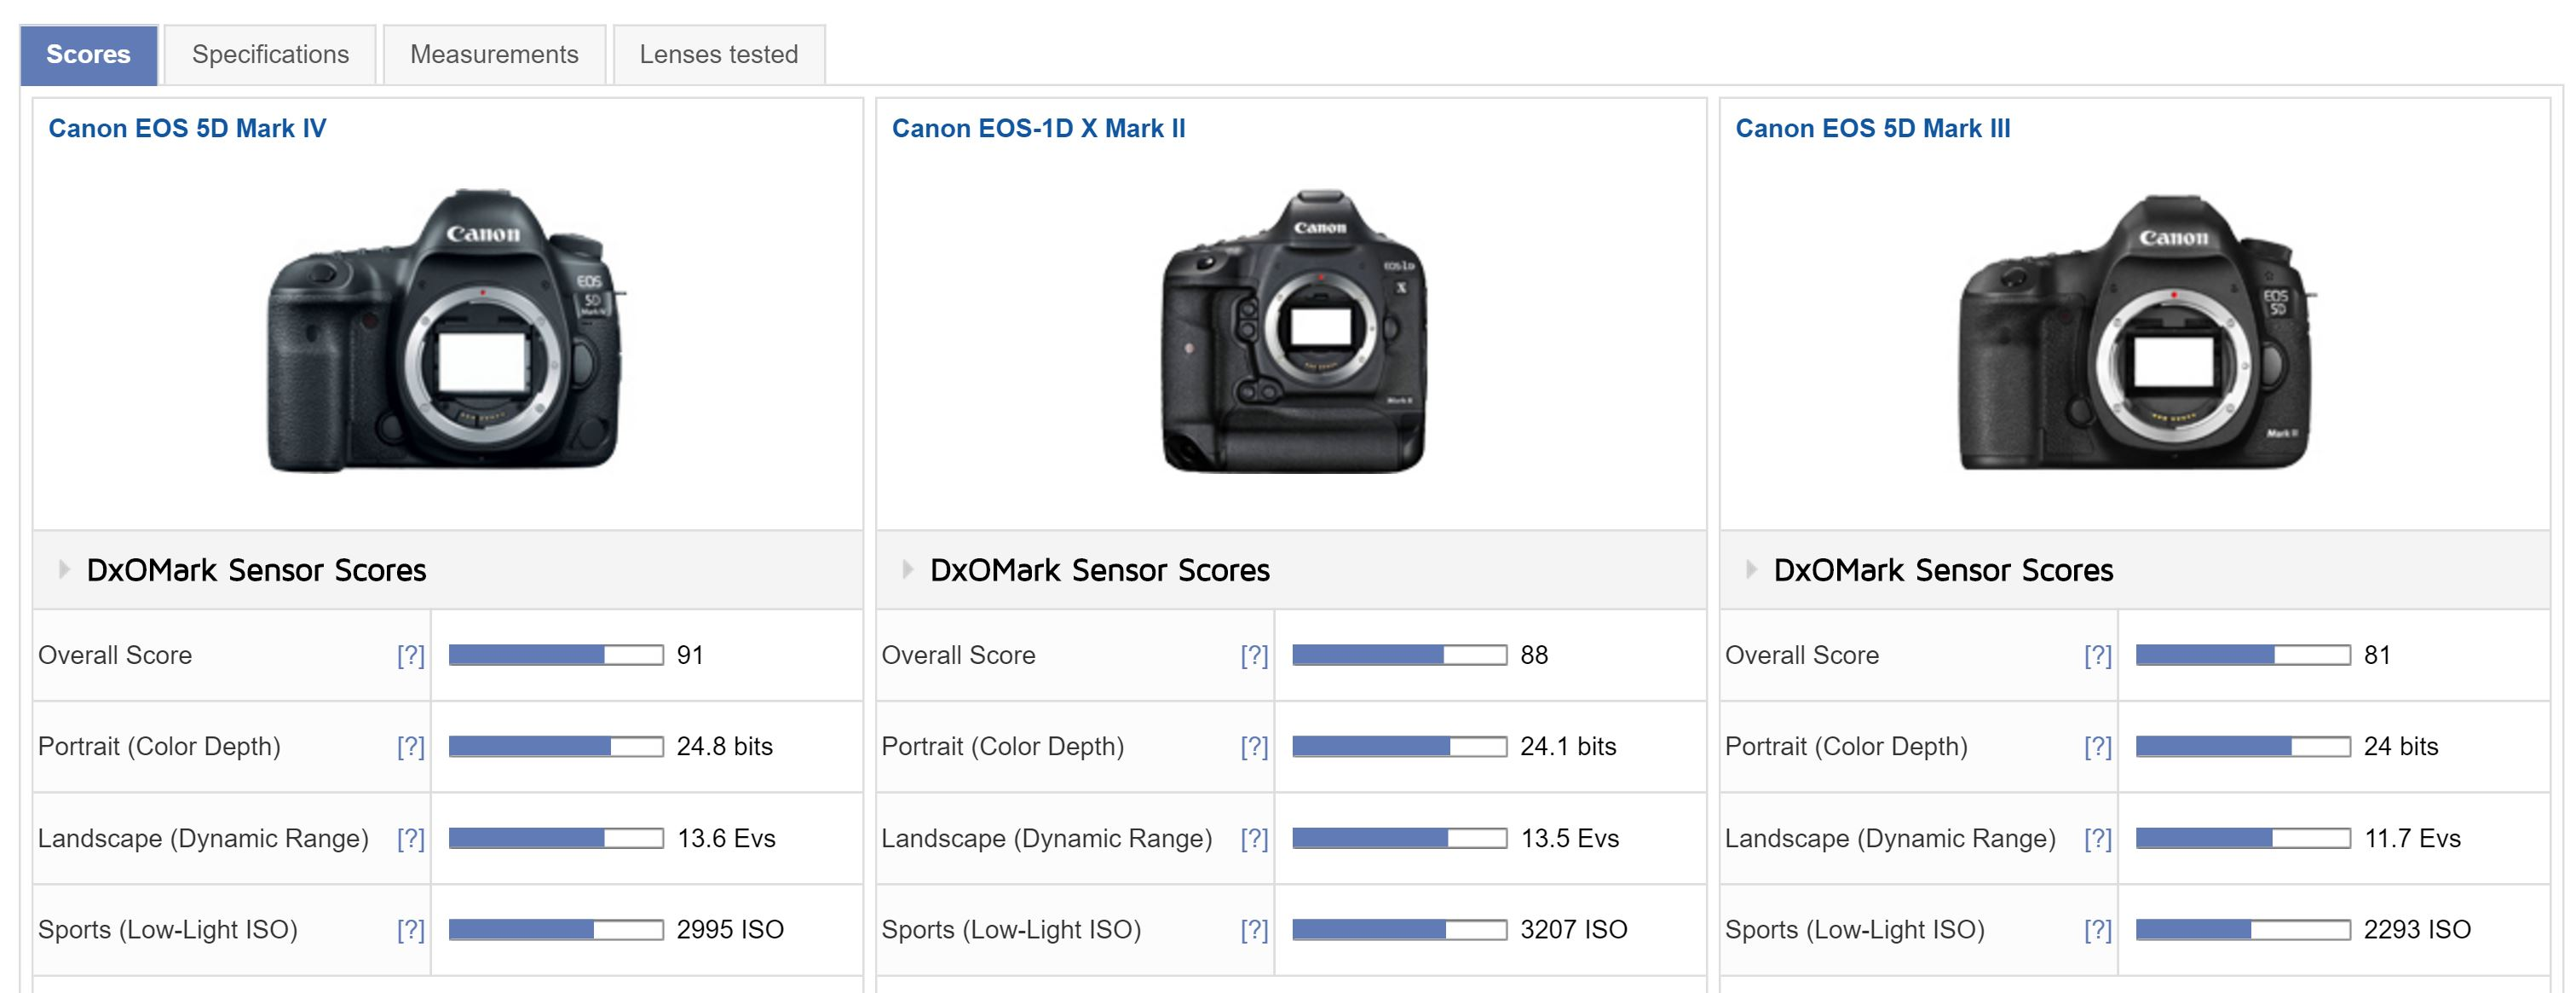 Canon EOS 5D Mark IV Test Results : Best Canon Sensor Ever